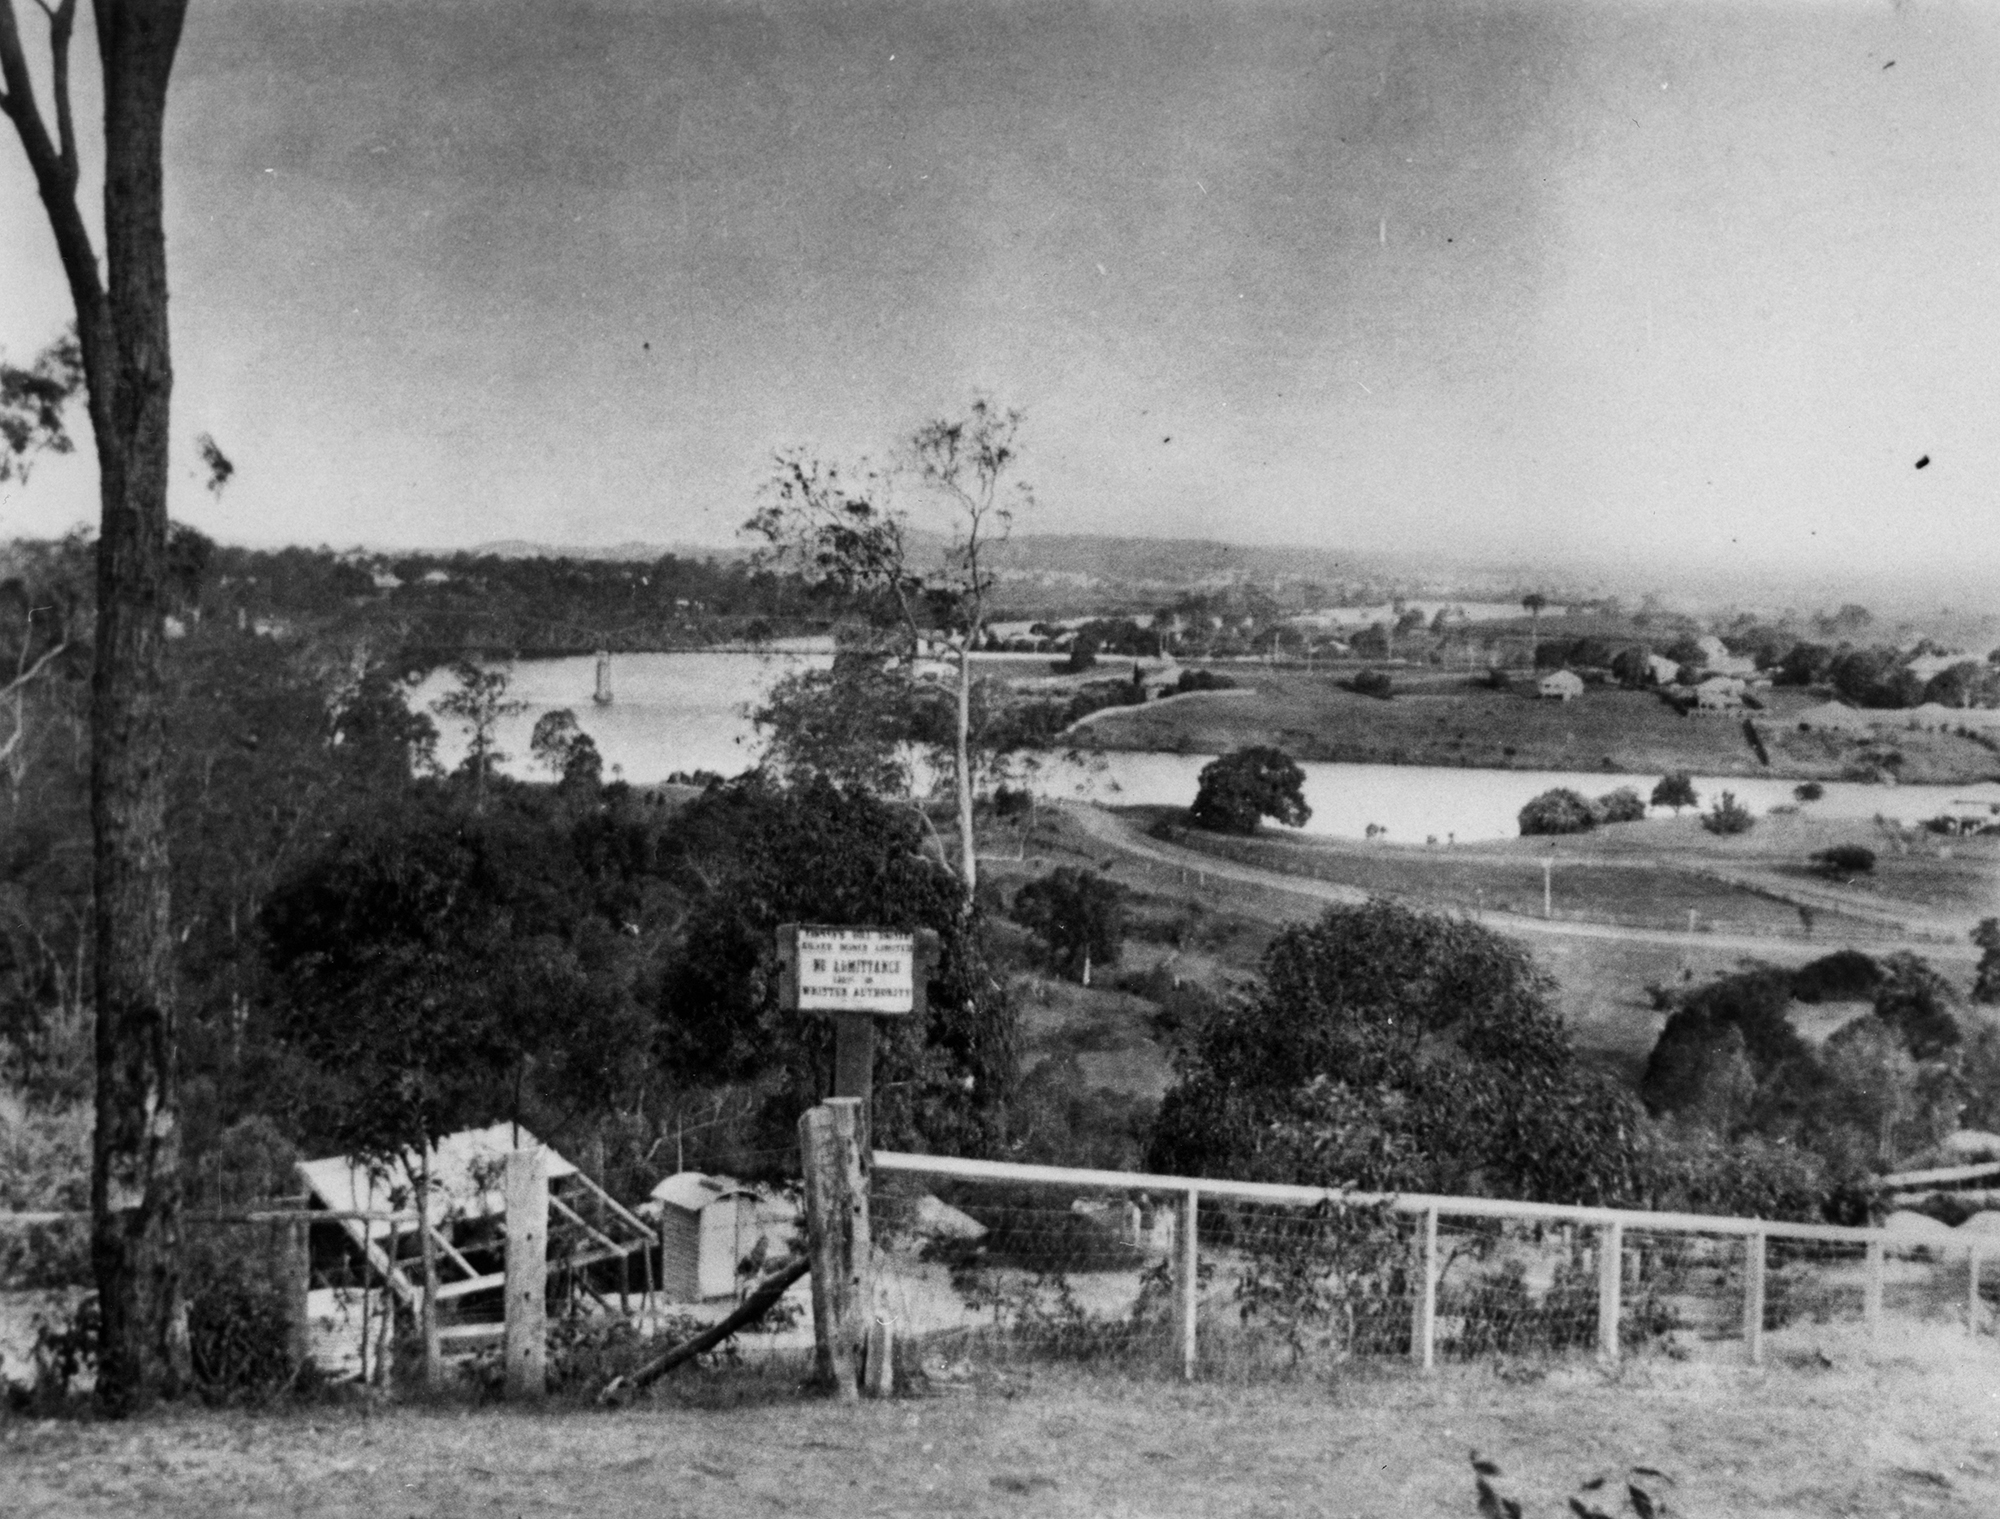 Photo courtesy of SLQ: Early view of Indooroopilly taken from Finney's Hill United Silver Mine Negative no. 80004.